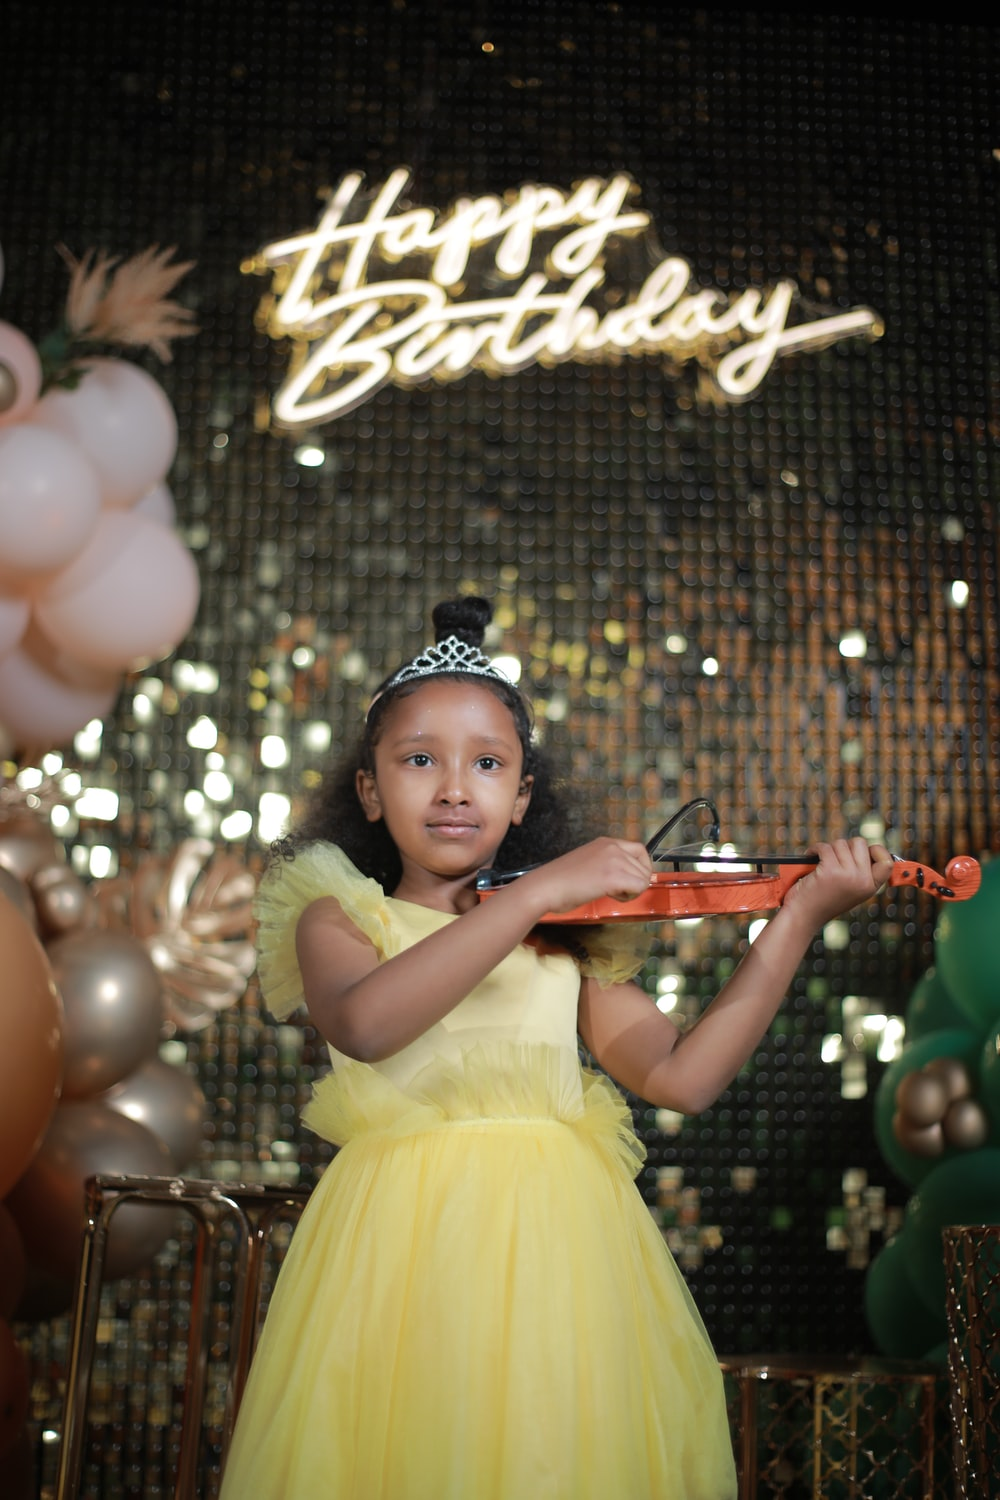 girl in white dress playing violin